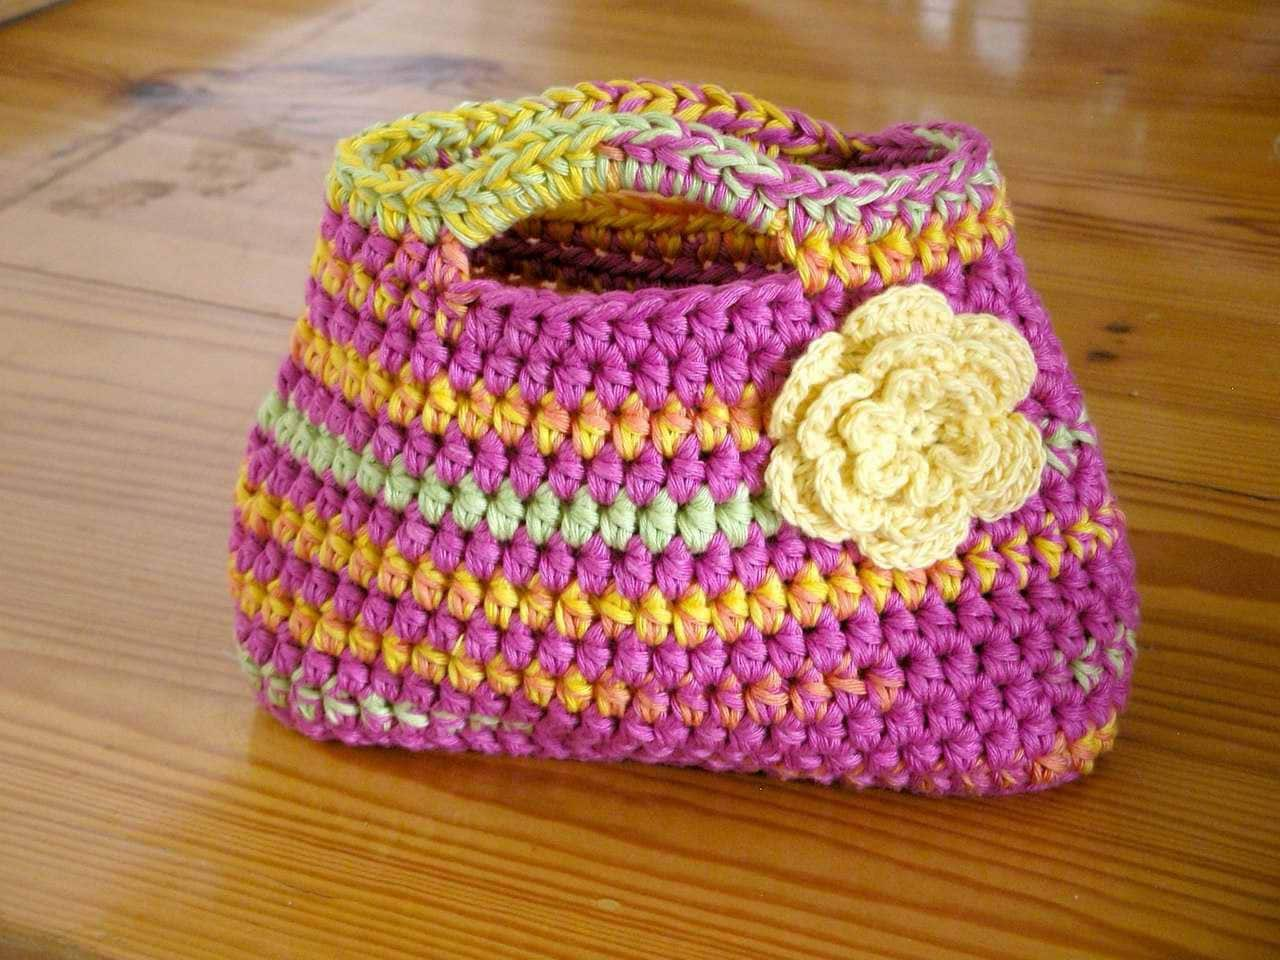 Free Crochet Pattern For Small Tote Bag : Easy Peasy Little Kidz Bag Crochet PATTERN No.504 Emailed2U